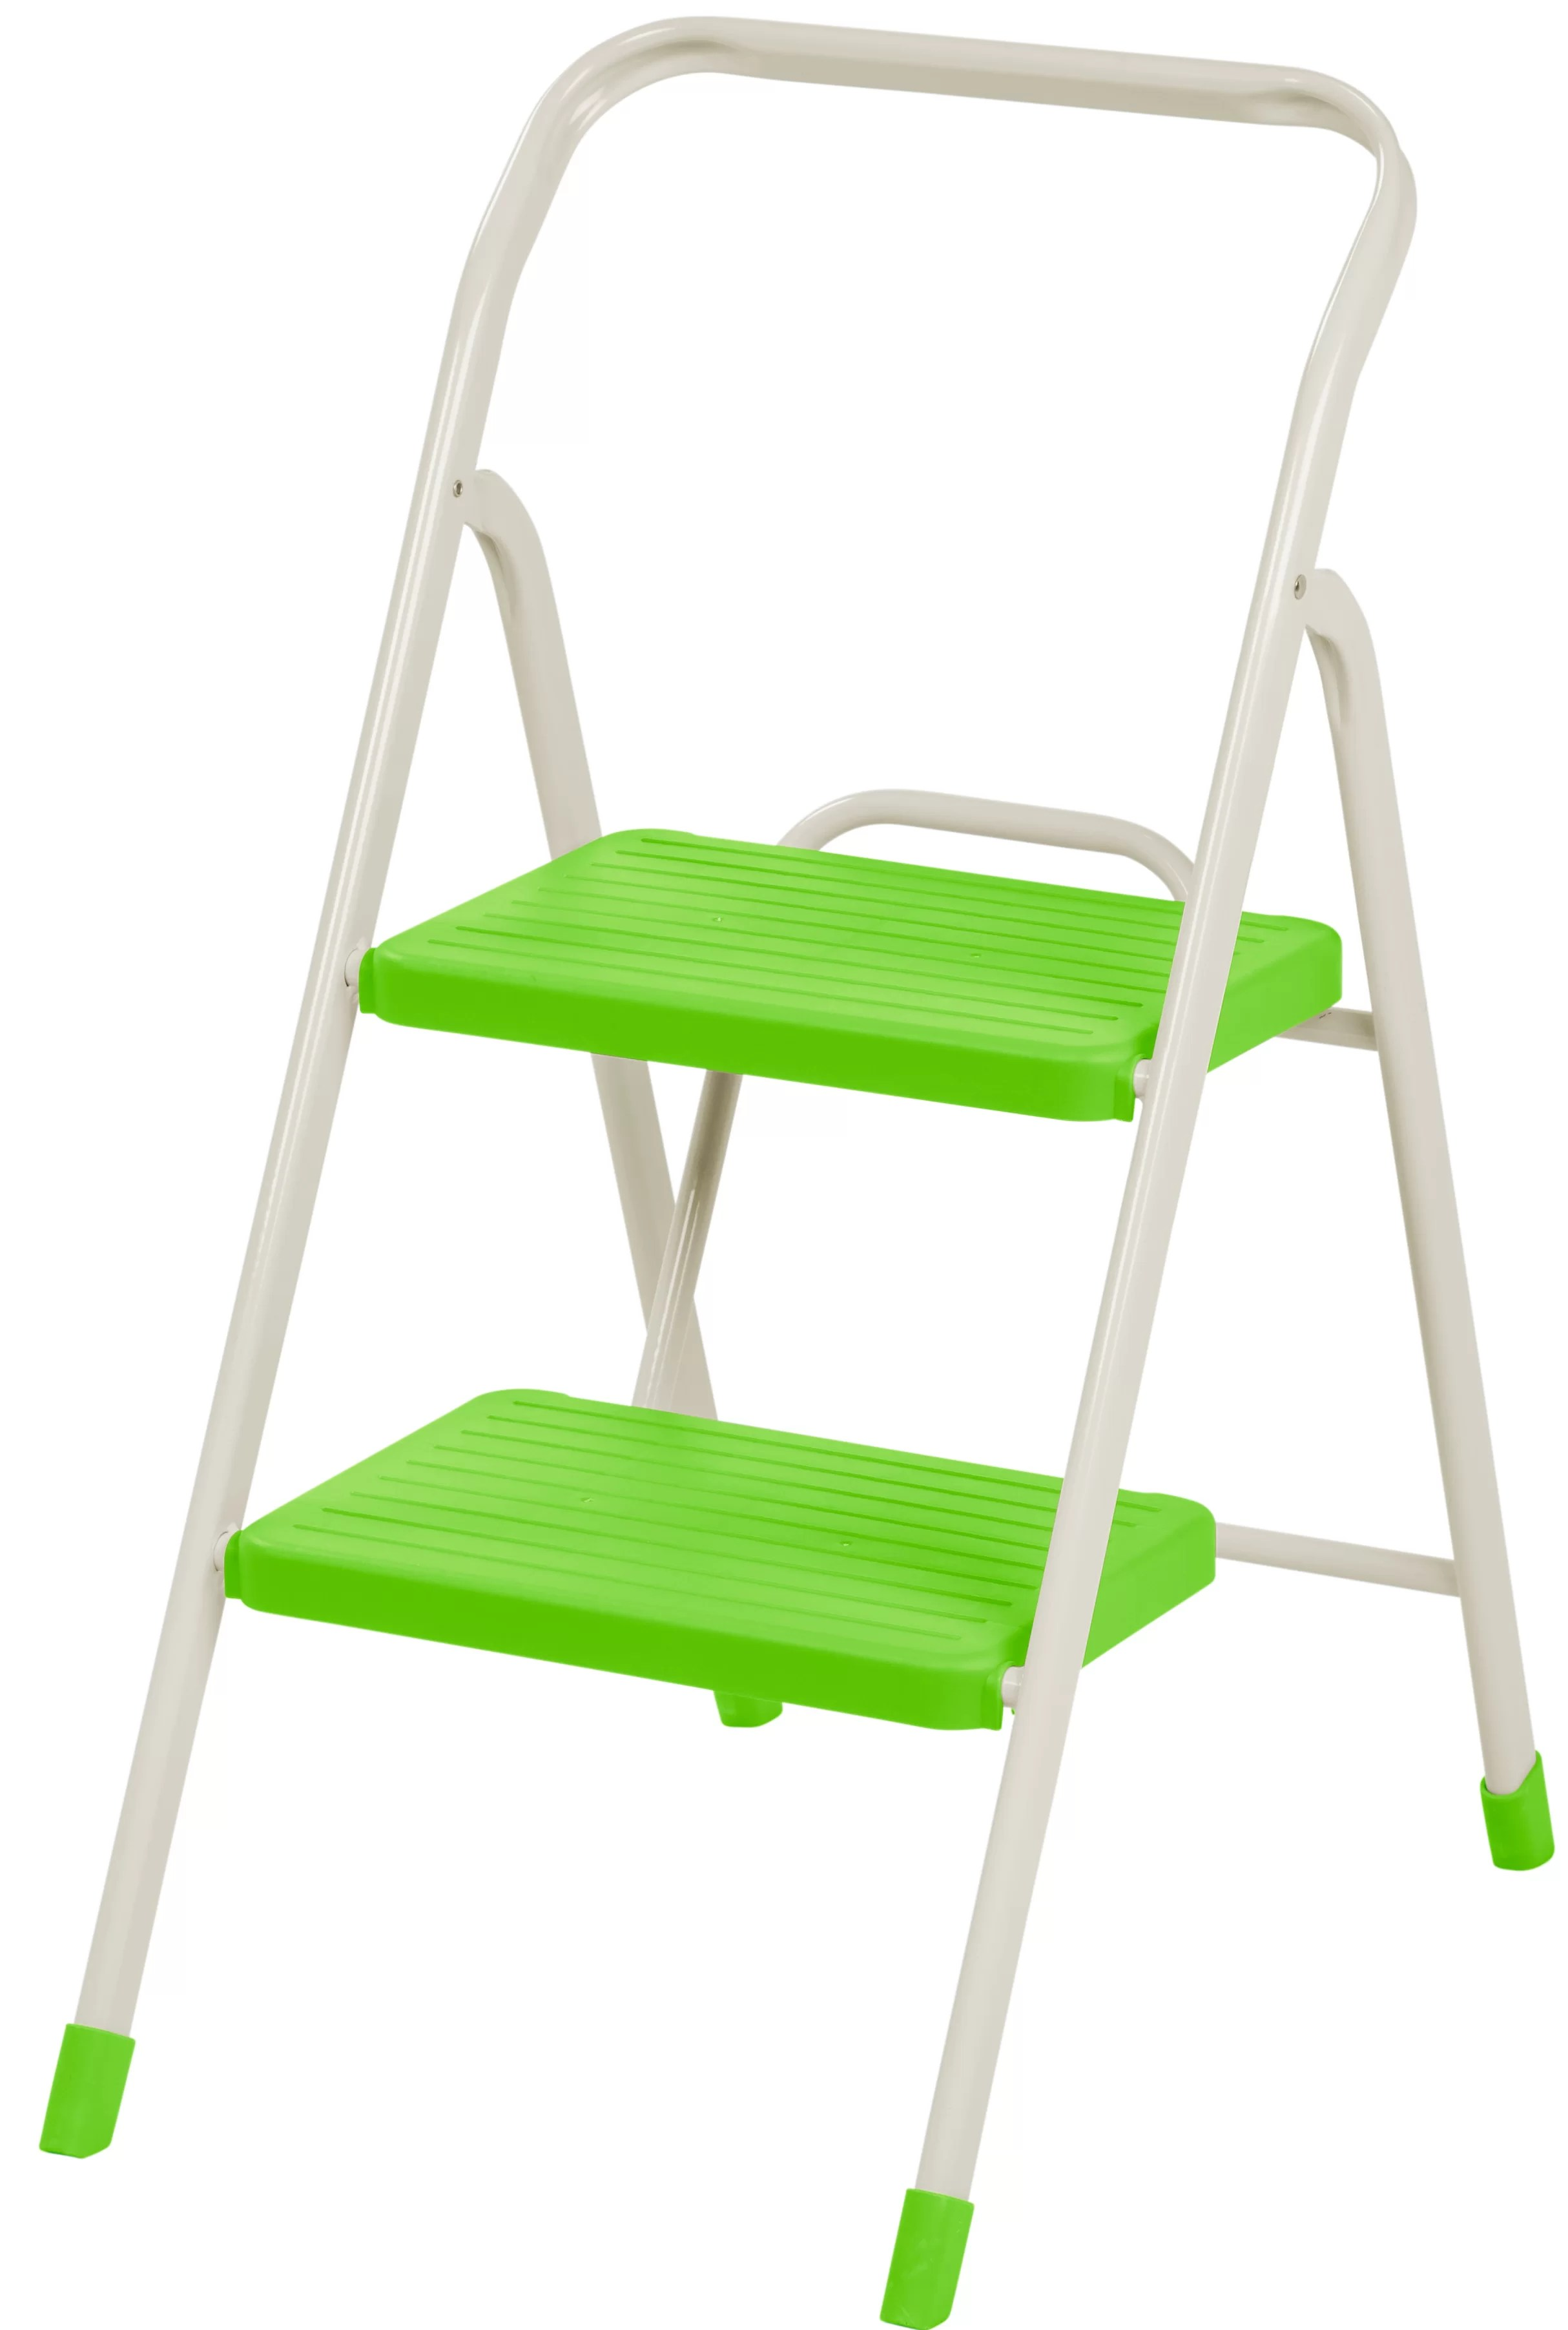 Metal Step Stool 2 Step Folding Step Stool With 225 Lb Load Capacity